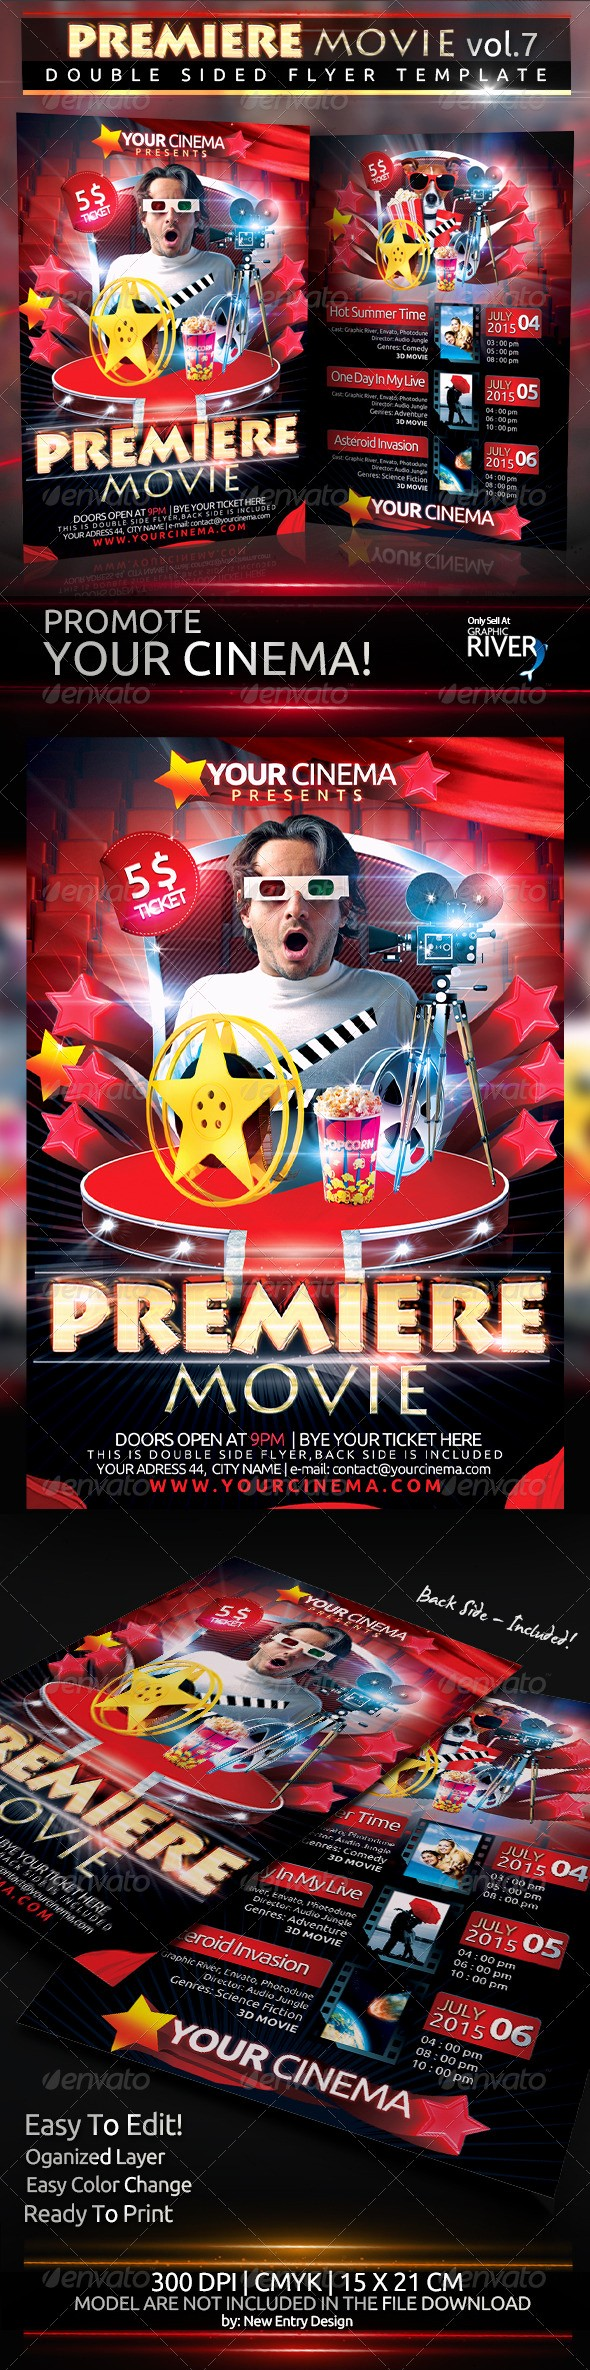 Movie Premiere Invitation Template Free Awesome Movie Premiere Invitation Template Dondrup